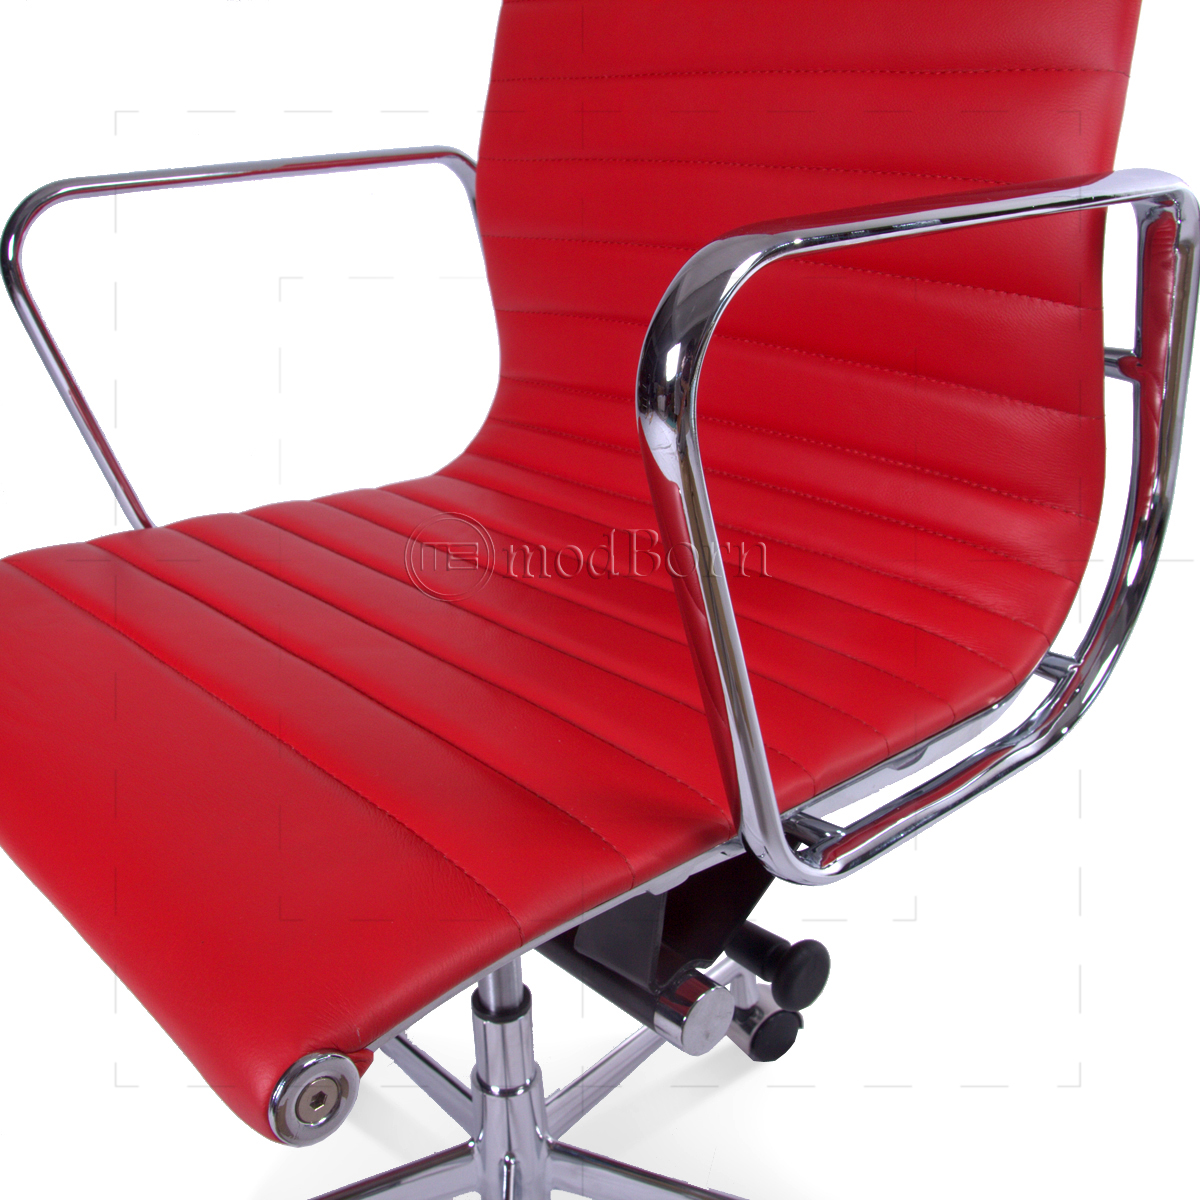 EA119 Eames Style Office Chair High Back Ribbed Red Leather   Replica